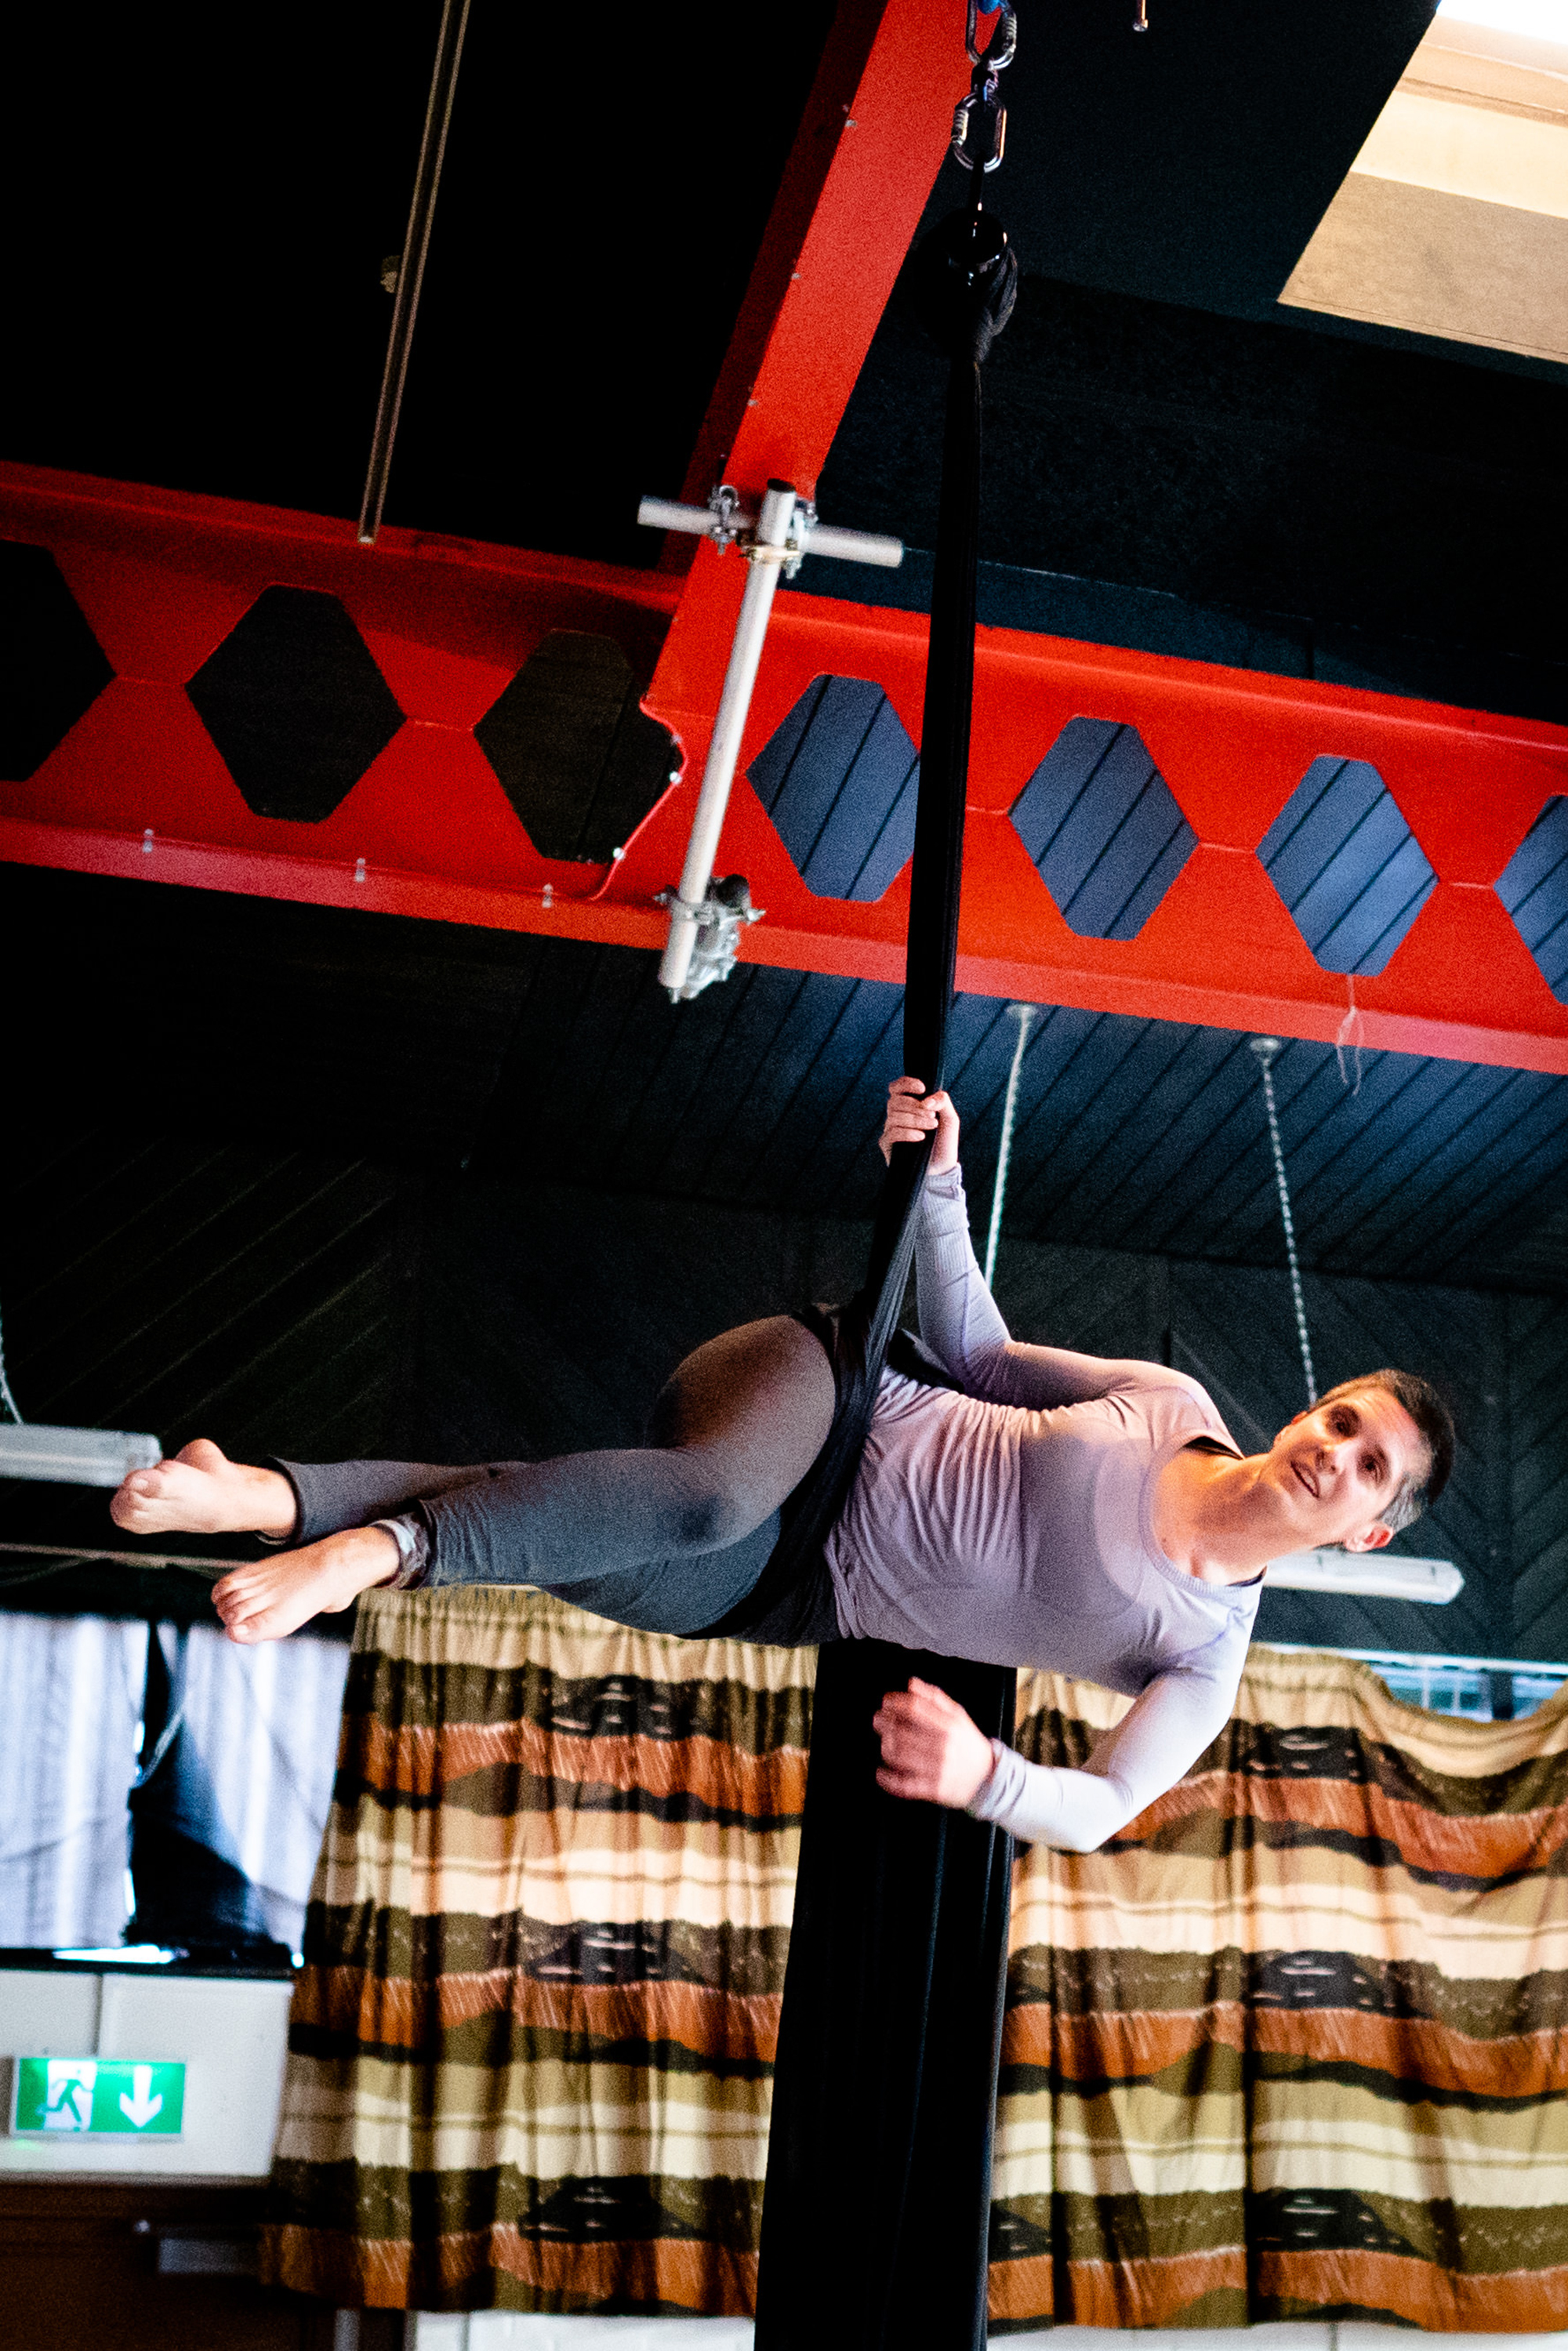 A full shot of a white woman with dark cropped hair suspended horizontally from aerial silks.